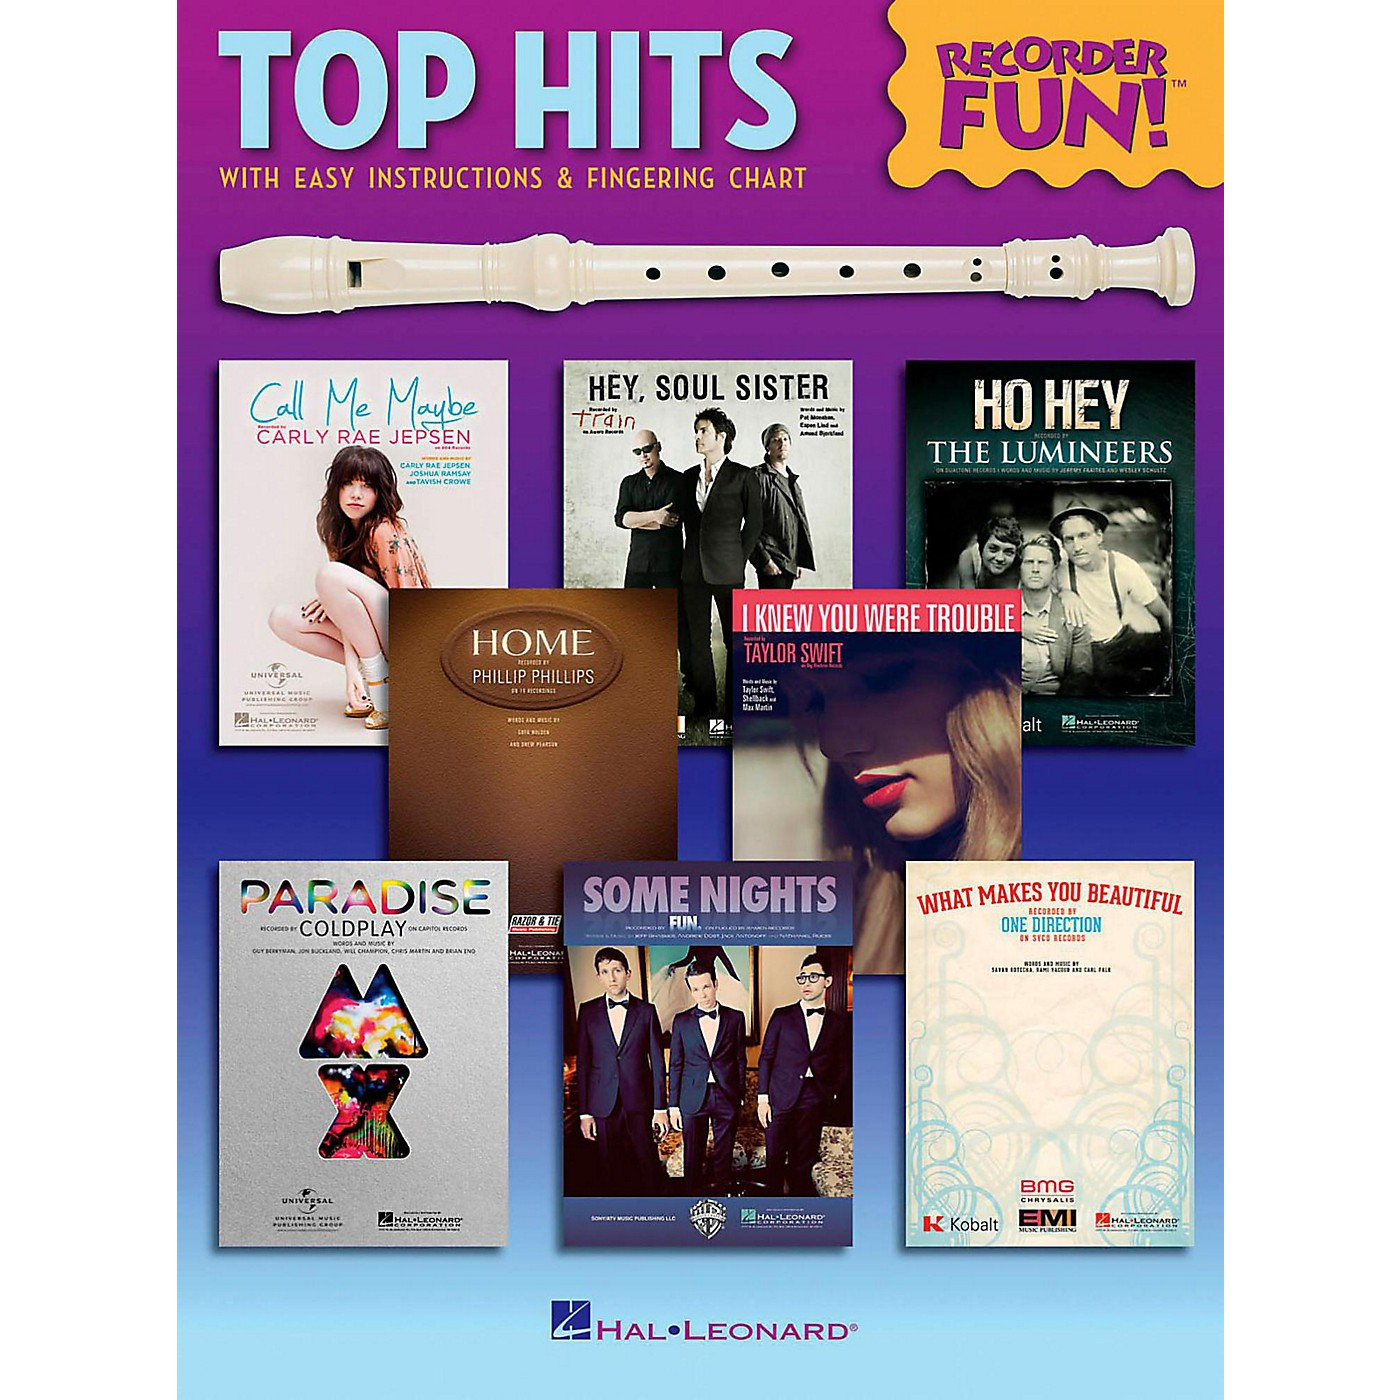 Hal Leonard Top Hits - Recorder Fun!  Songbook with Easy Instructions & Fingering Chart thumbnail